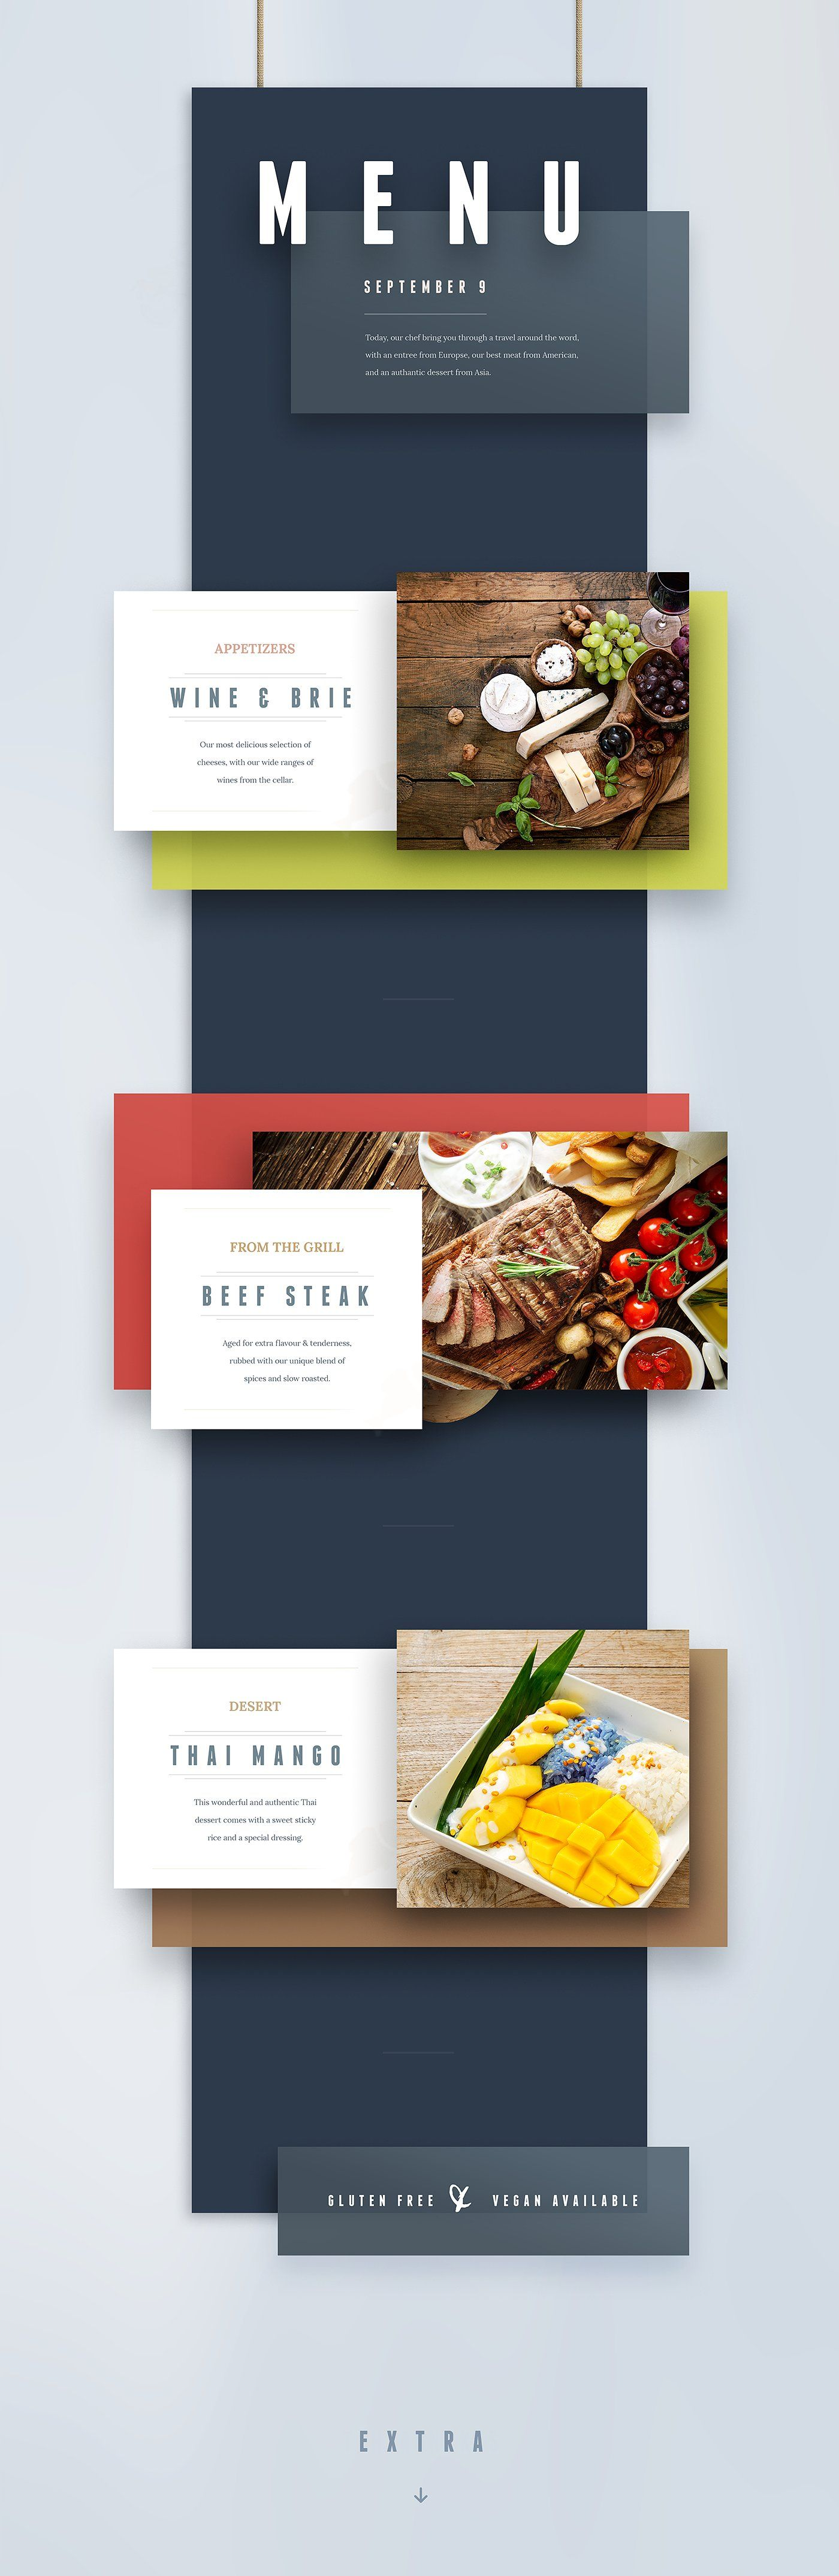 Menu Template For Restaurant Wedding Or Event Websites